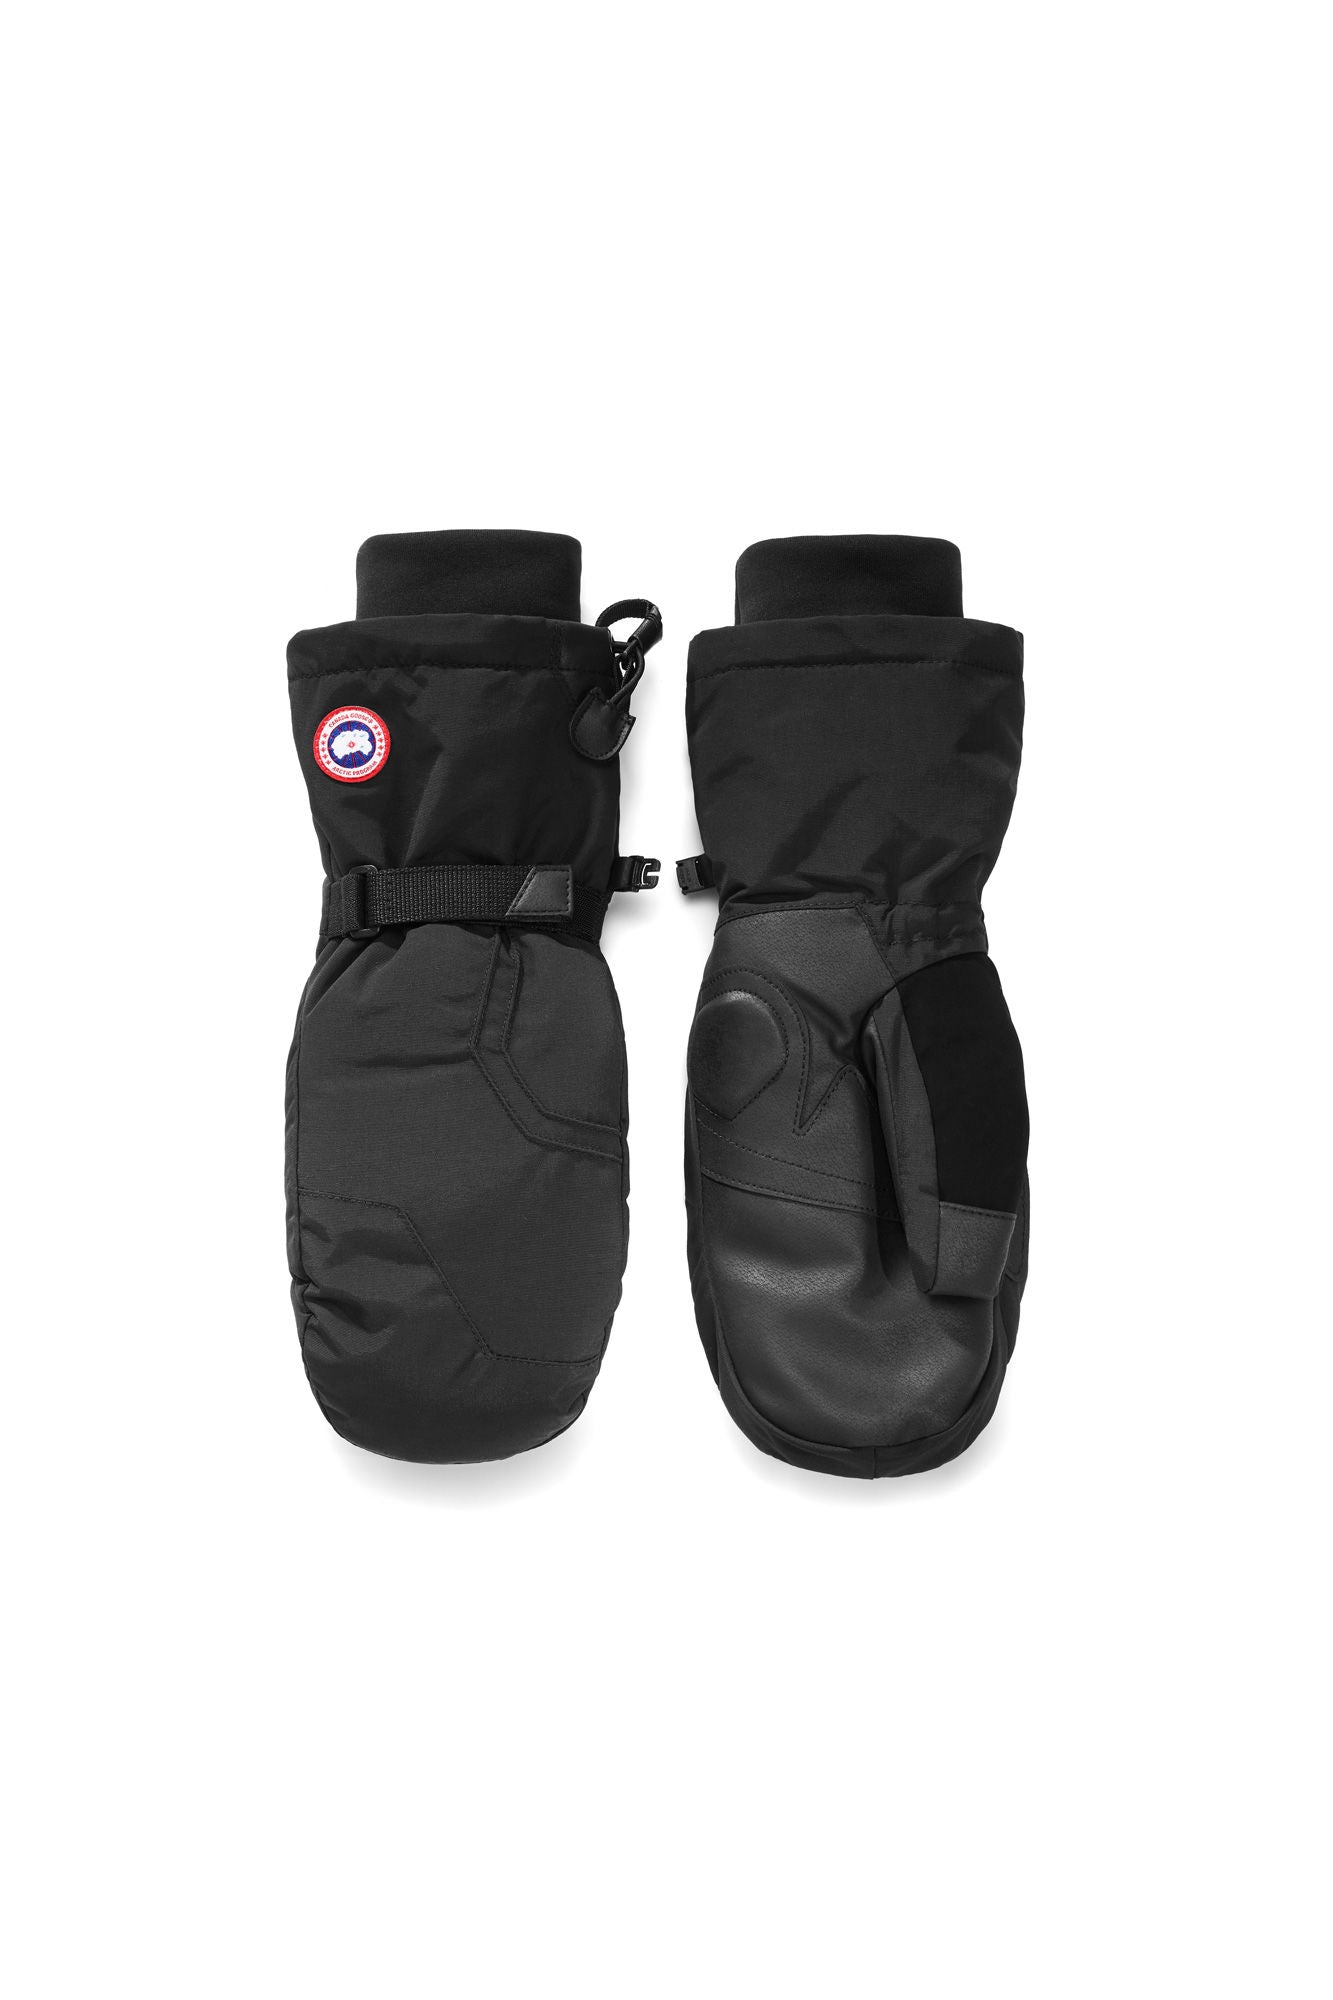 Arctic Down Mitts-Canada Goose-Over the Rainbow